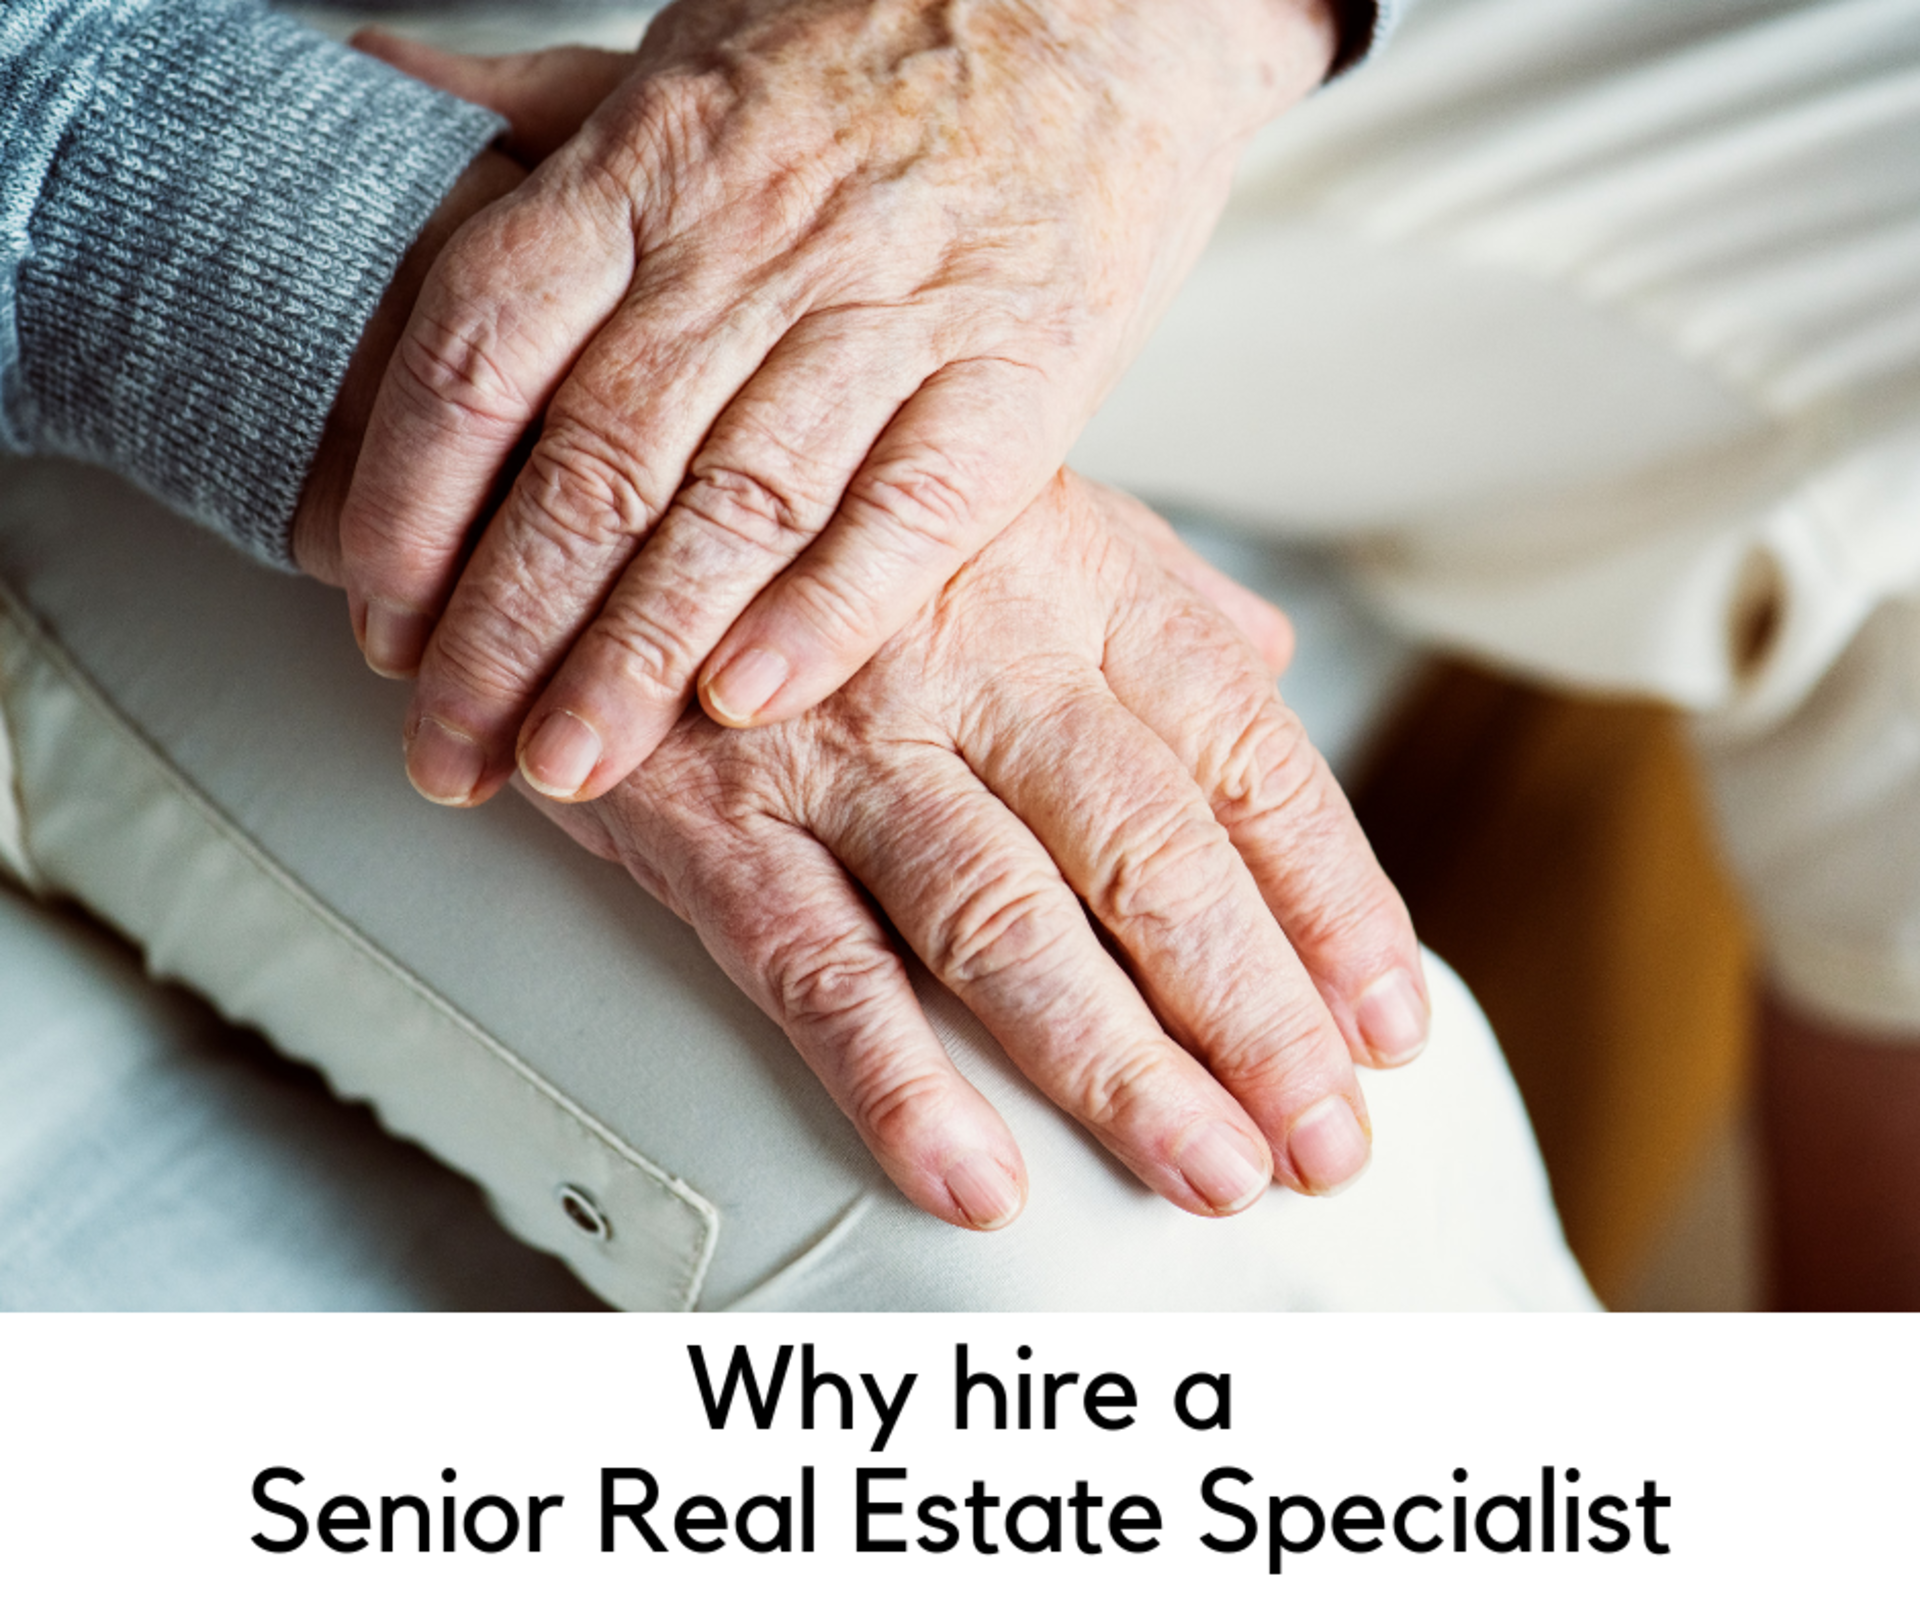 Why hire a Senior Real Estate Specialist